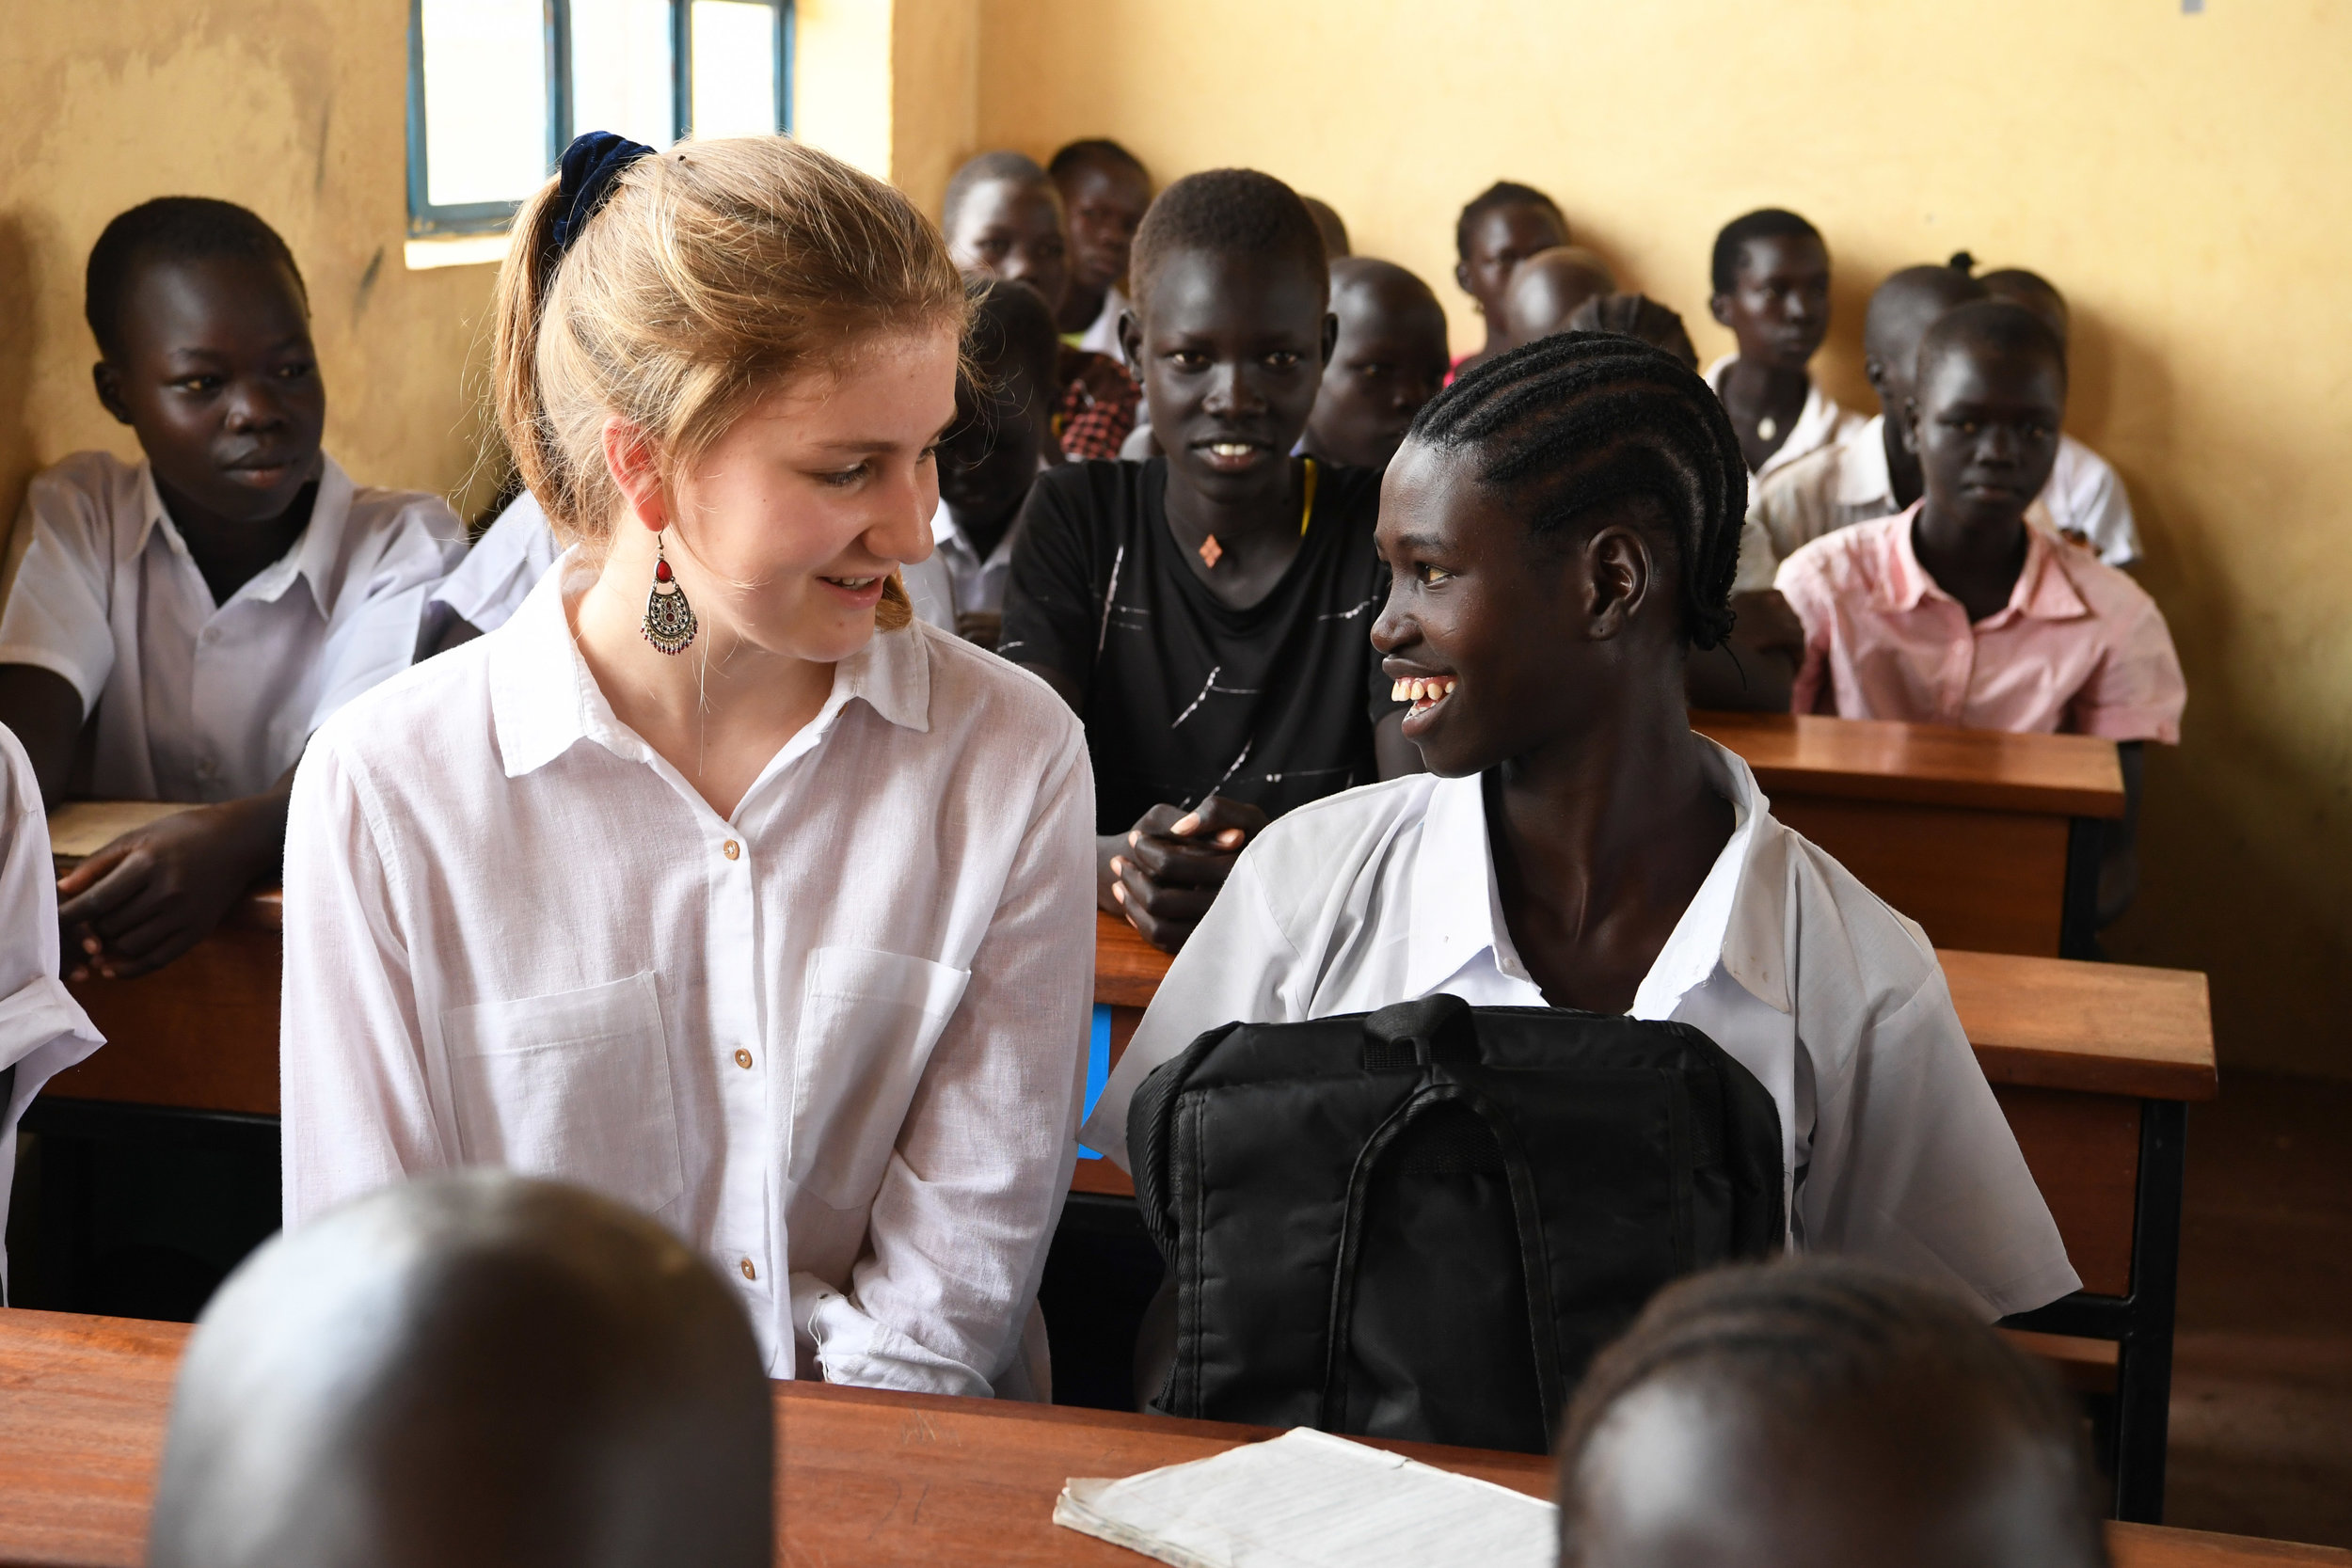 Princess Elisabeth accompanied her Mother, Queen Mathilde, on the UNICEF-led mission to Kenya.